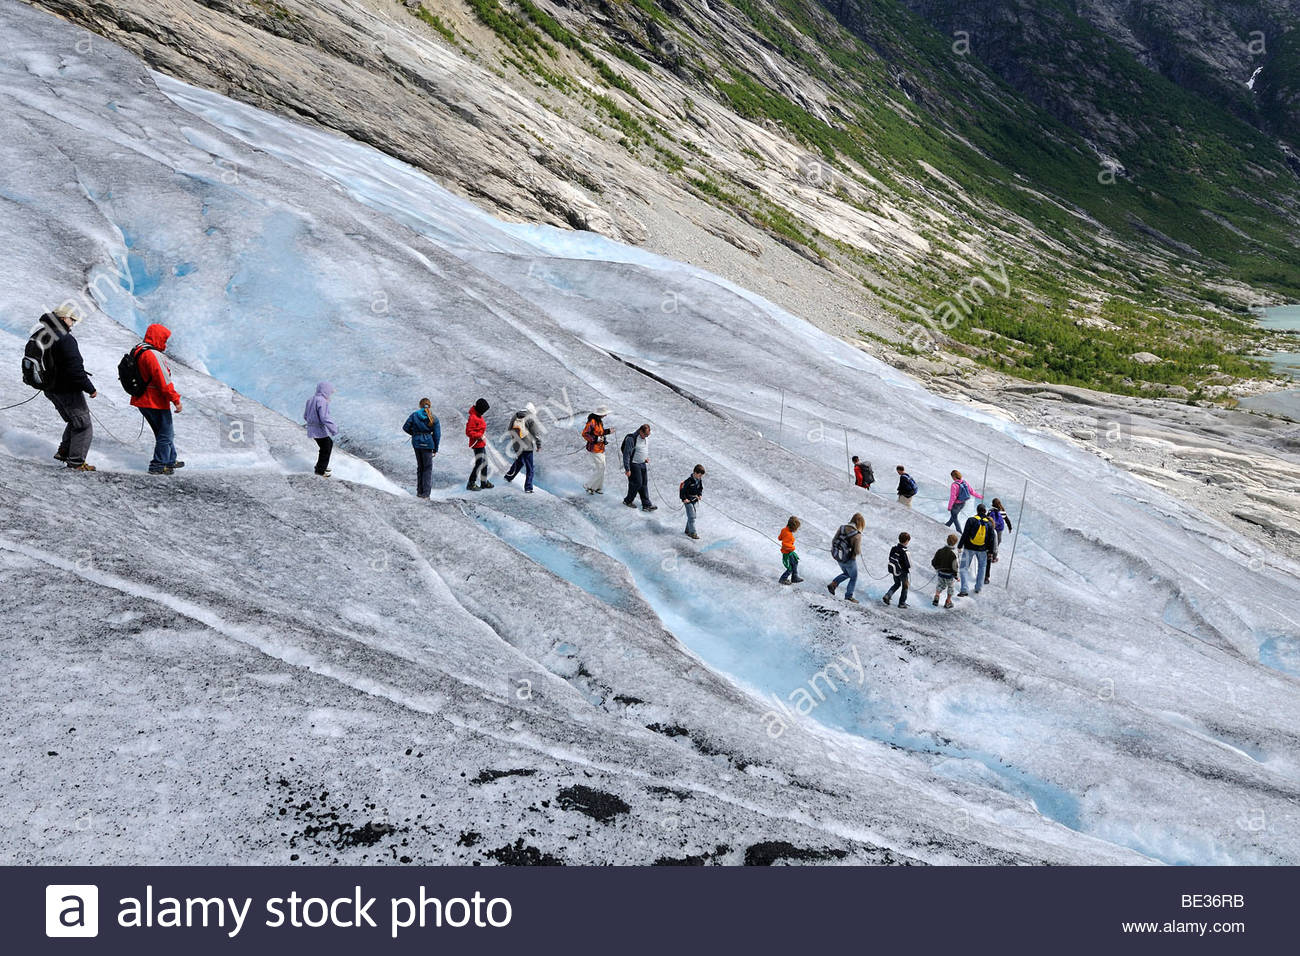 Glacier hike, guided tour, family tours, tourists hikers, rope, crampons, glacier tongue Nigardsbre, an offshoot - Stock Image